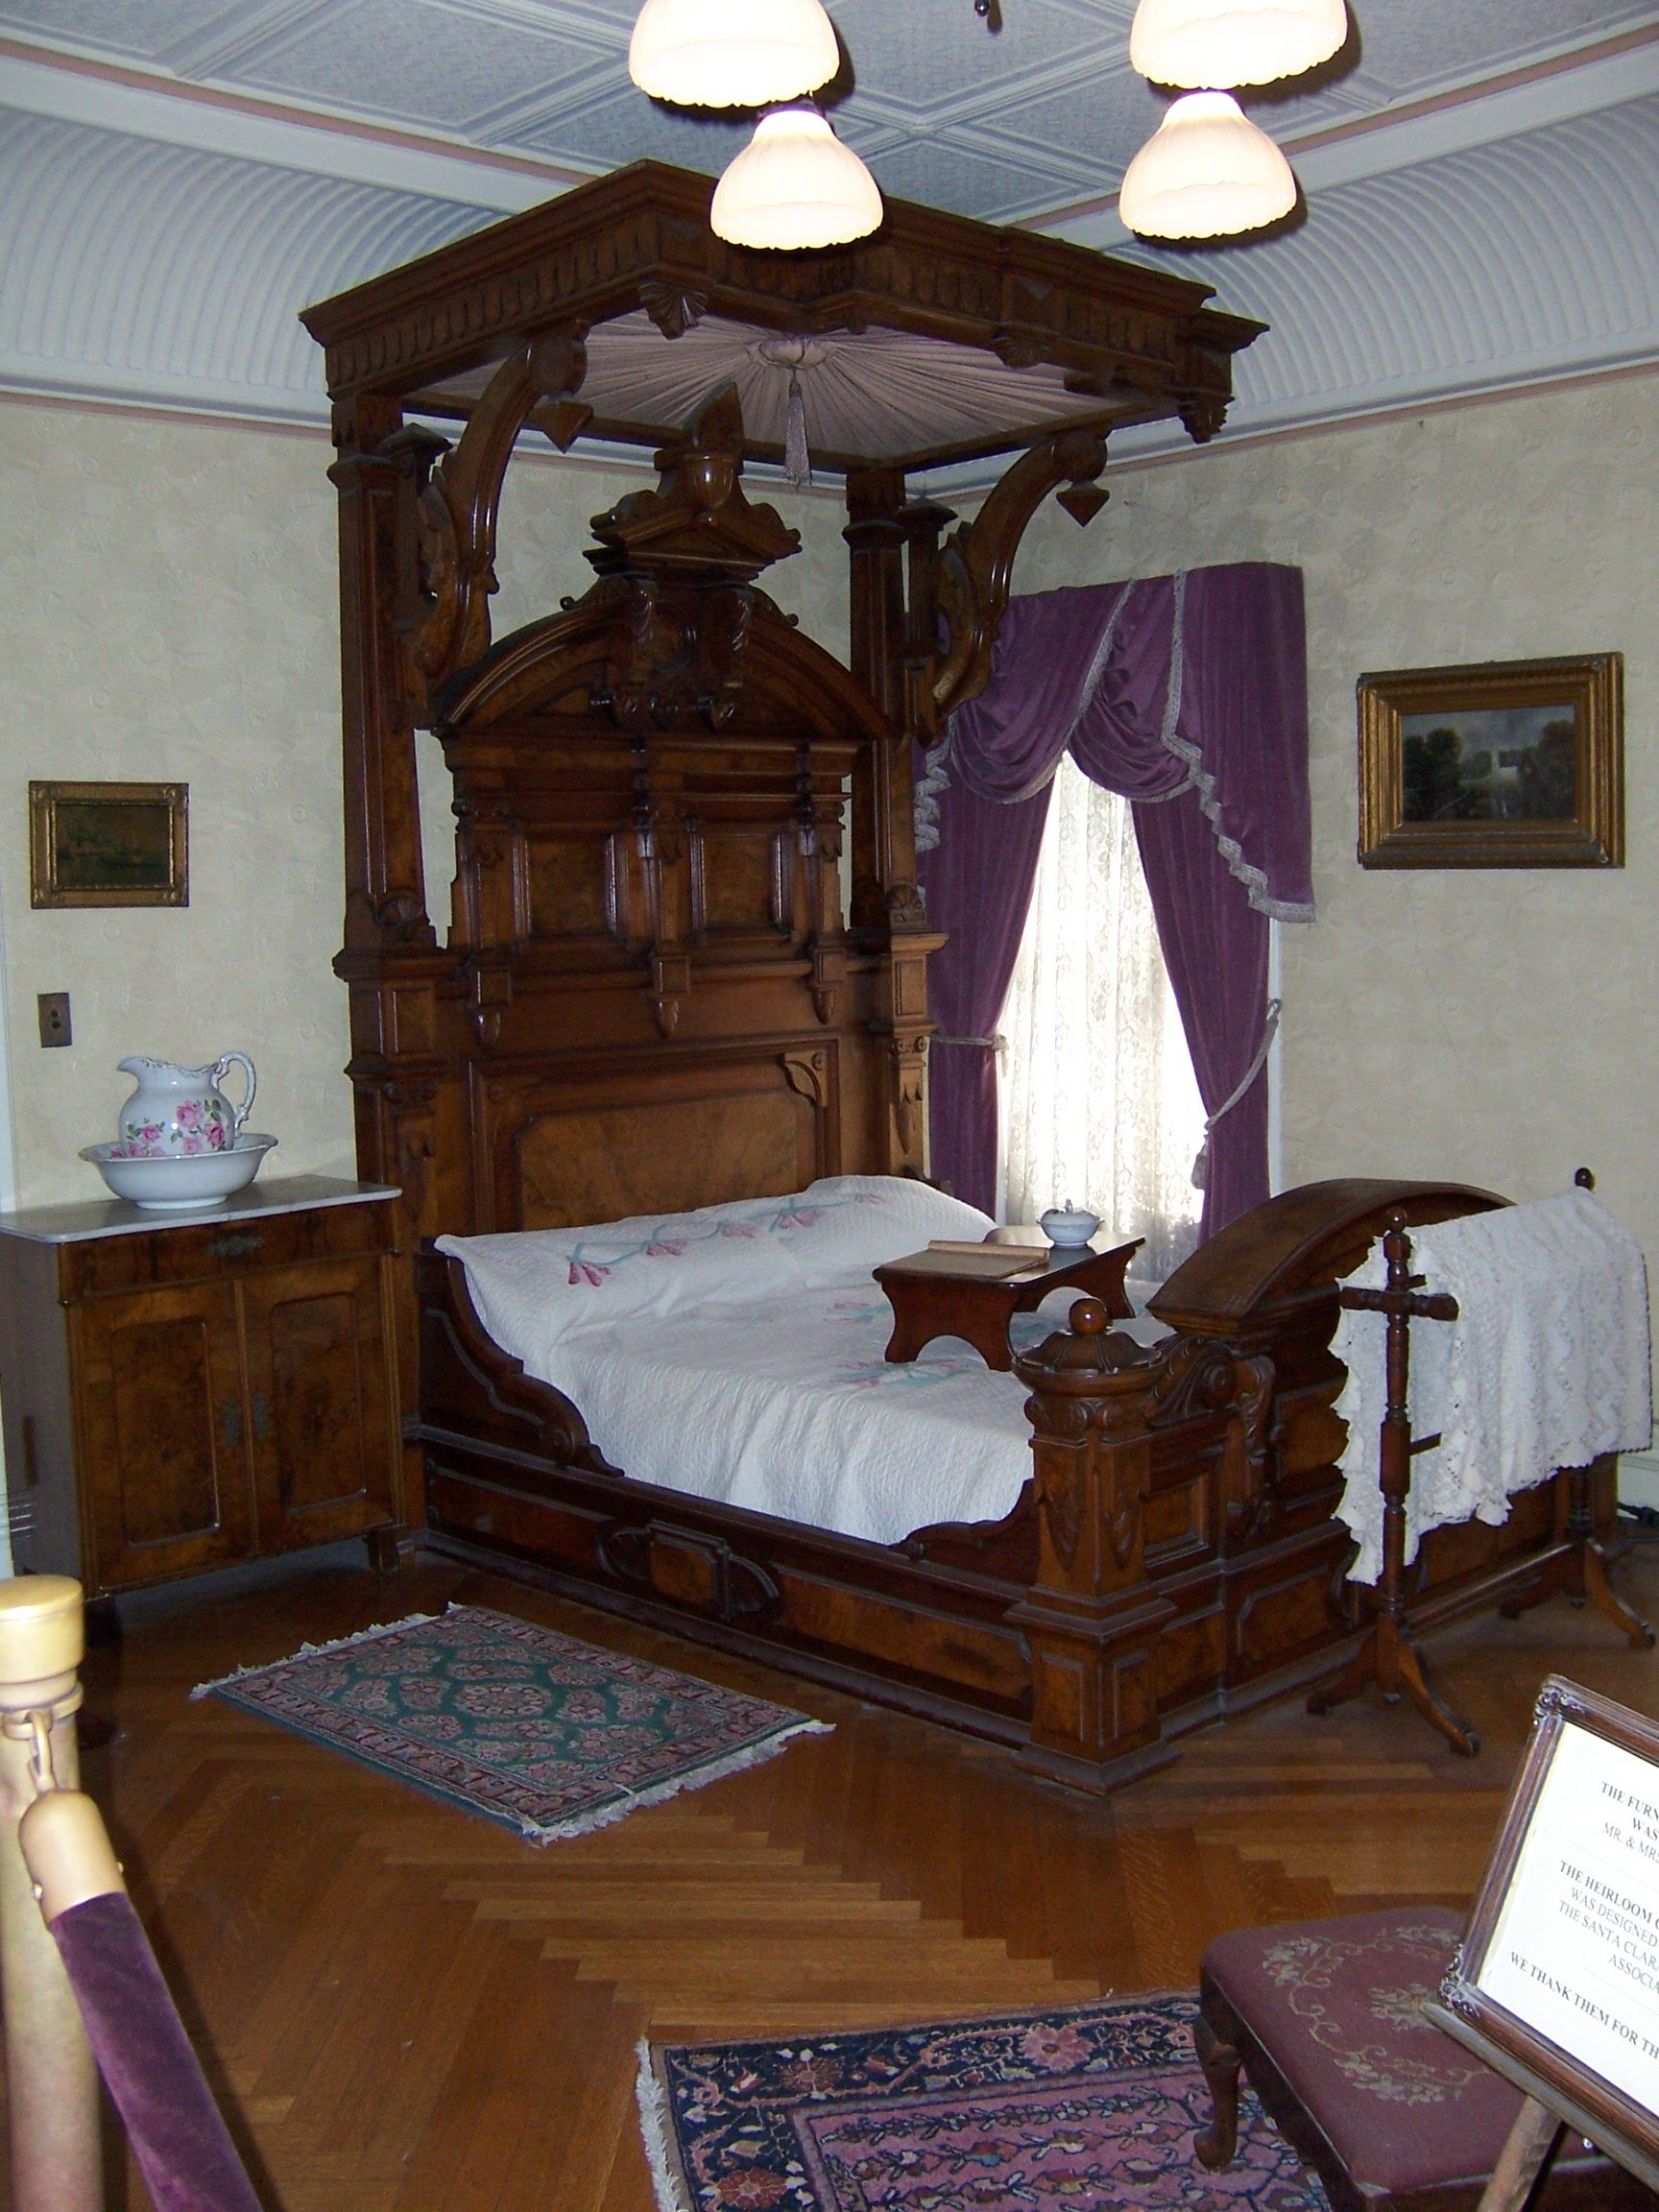 sarah winchester s bedroom where she died winchester mystery